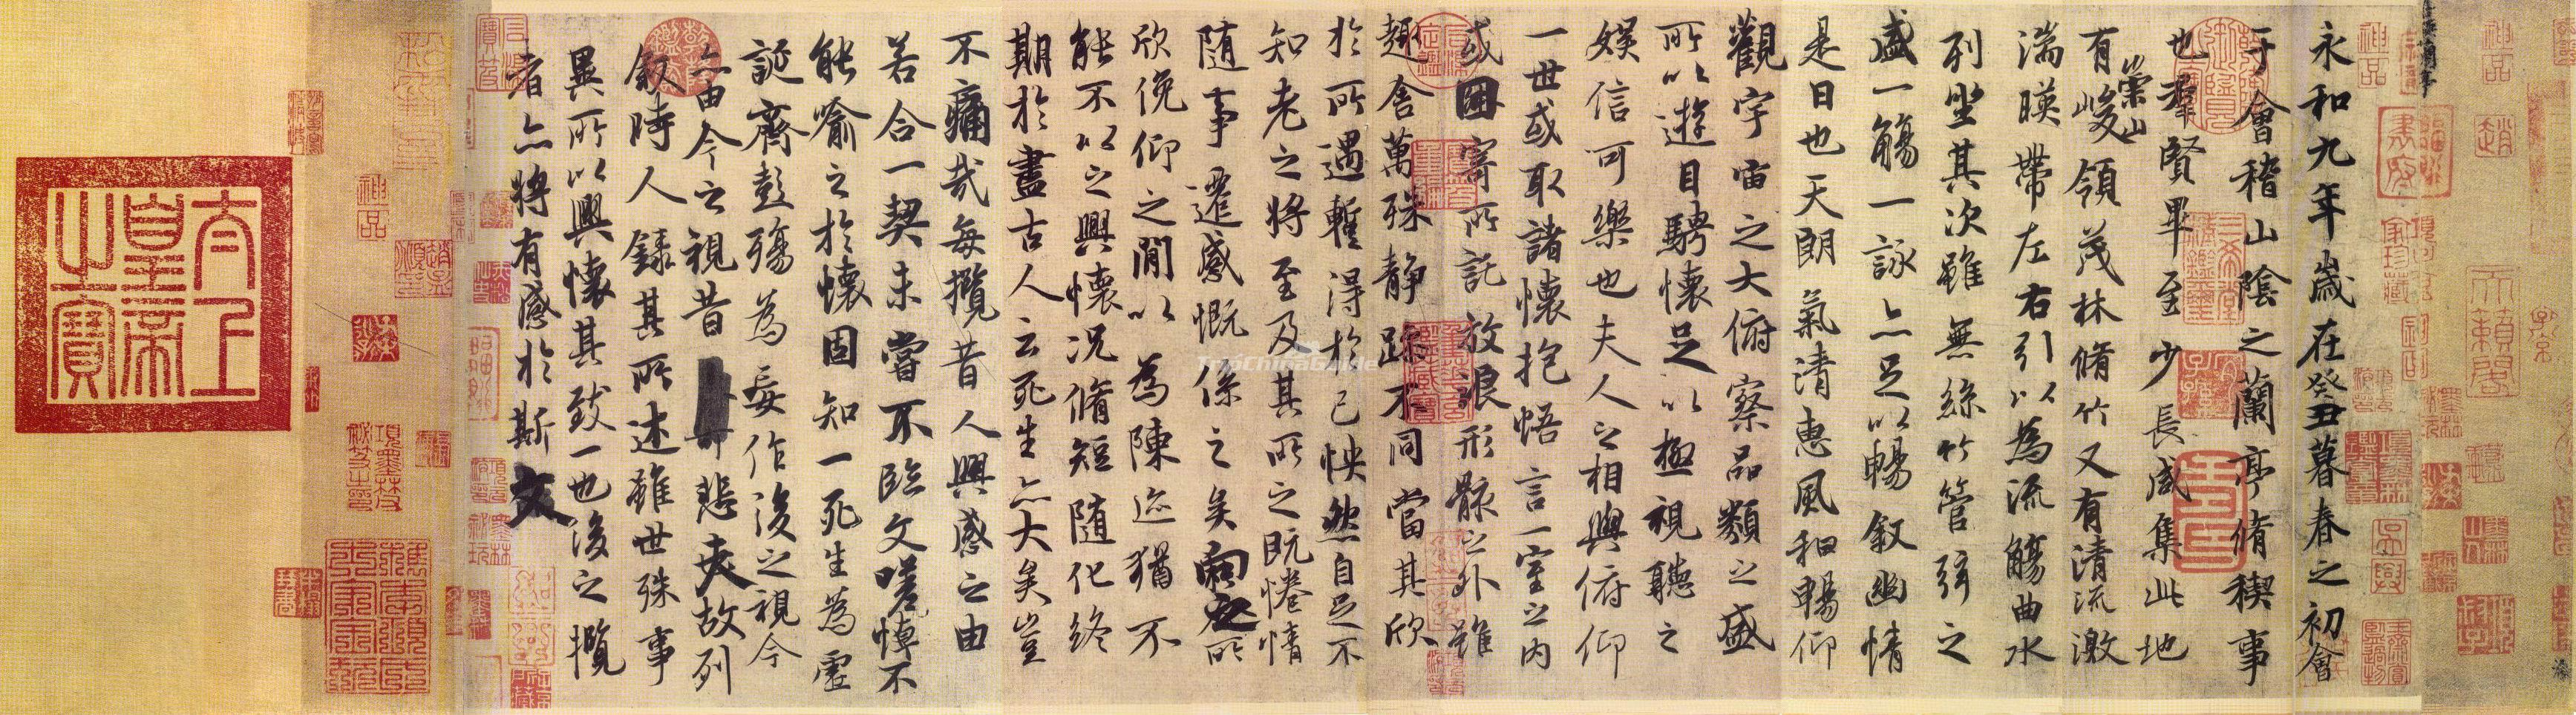 The Preface to the Poems Composed at the Orchid Pavilion by Wang Xizhi